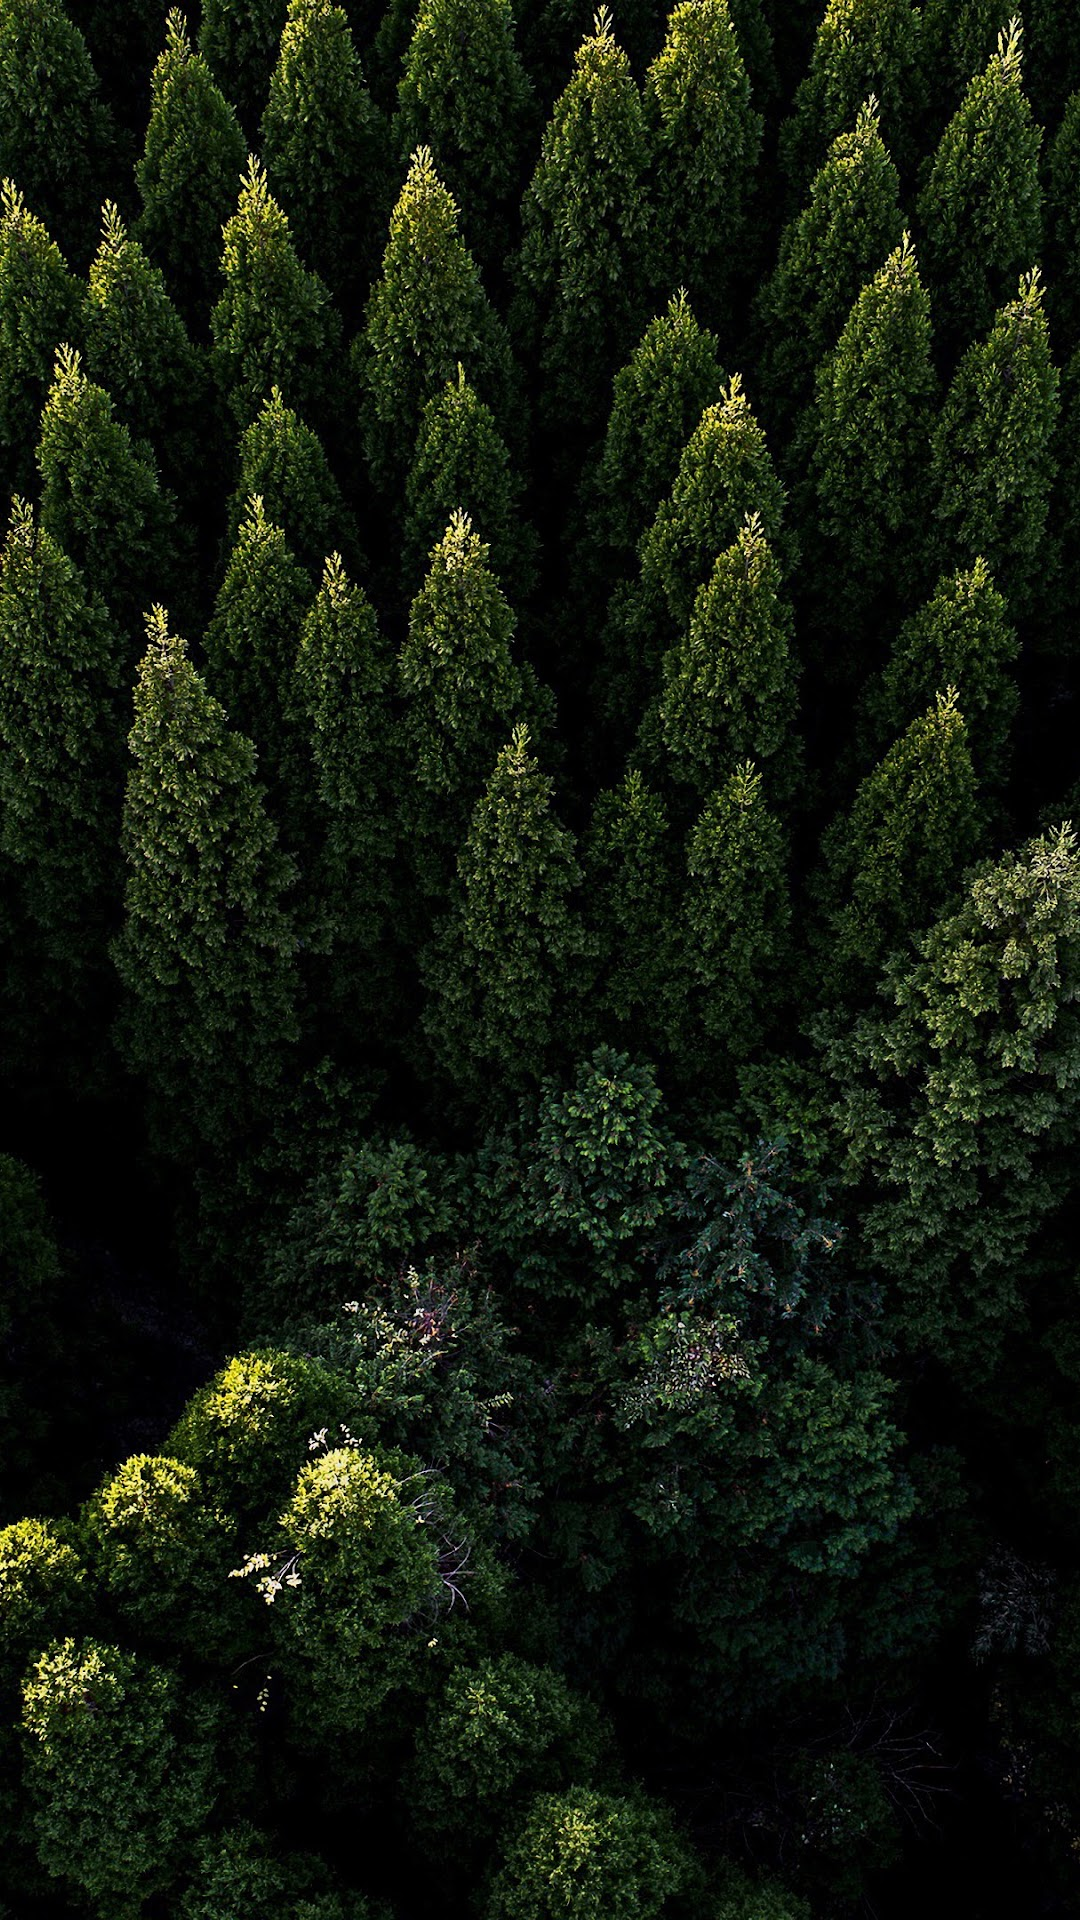 Forest Nature Aerial View Scenery 4k Wallpaper 106